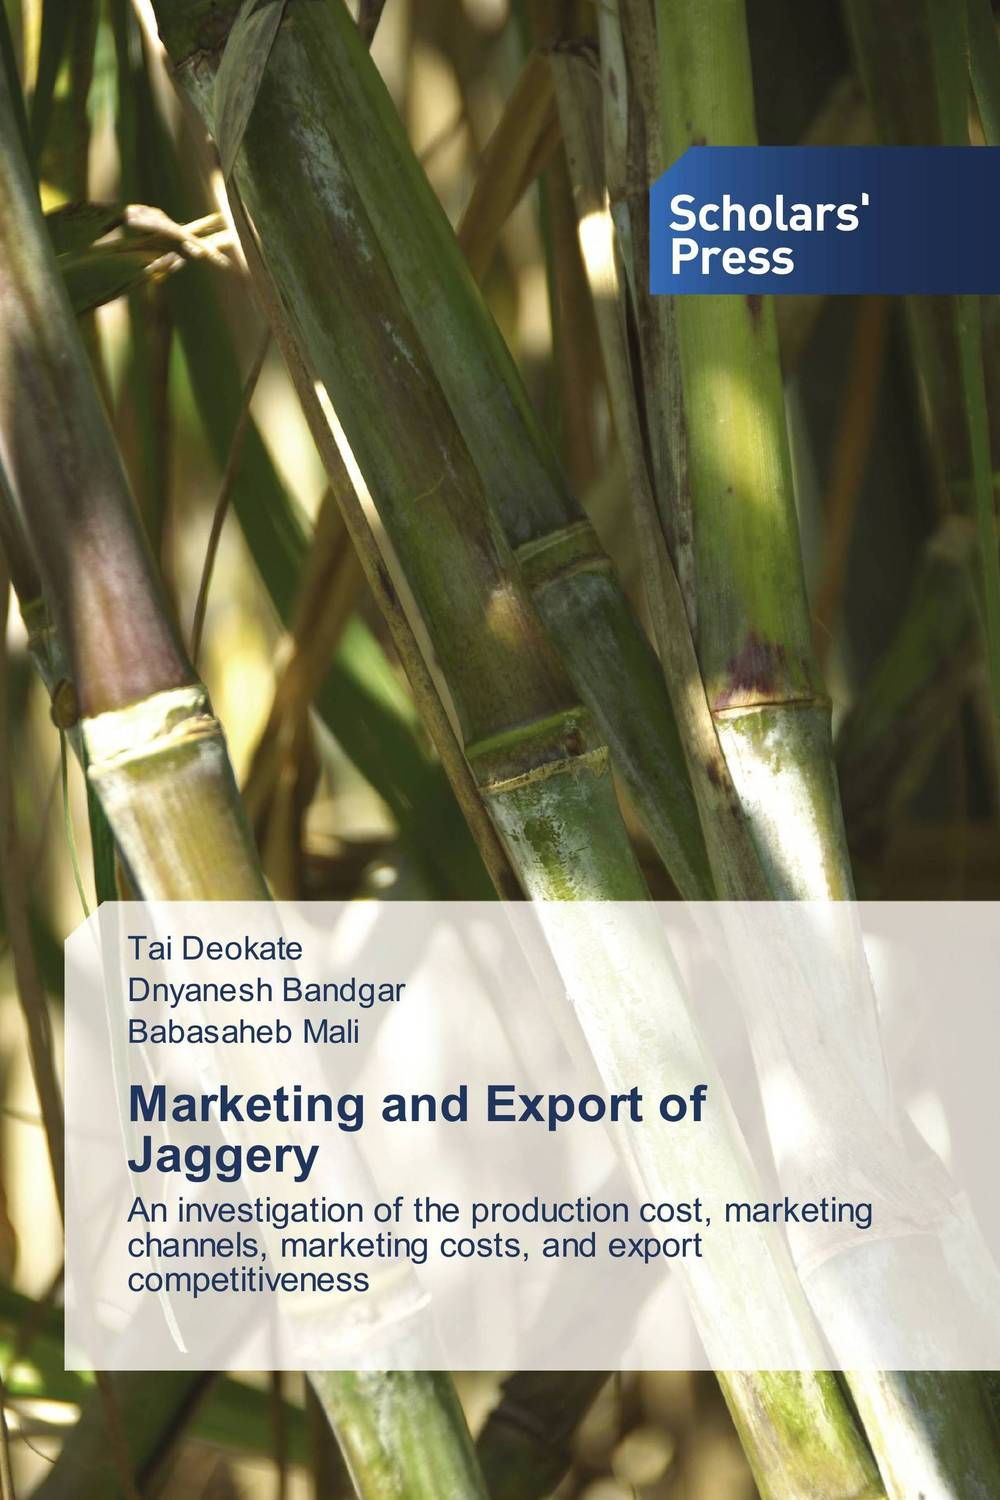 Marketing and Export of Jaggery prospects of citrus producers and marketing in pakistani california